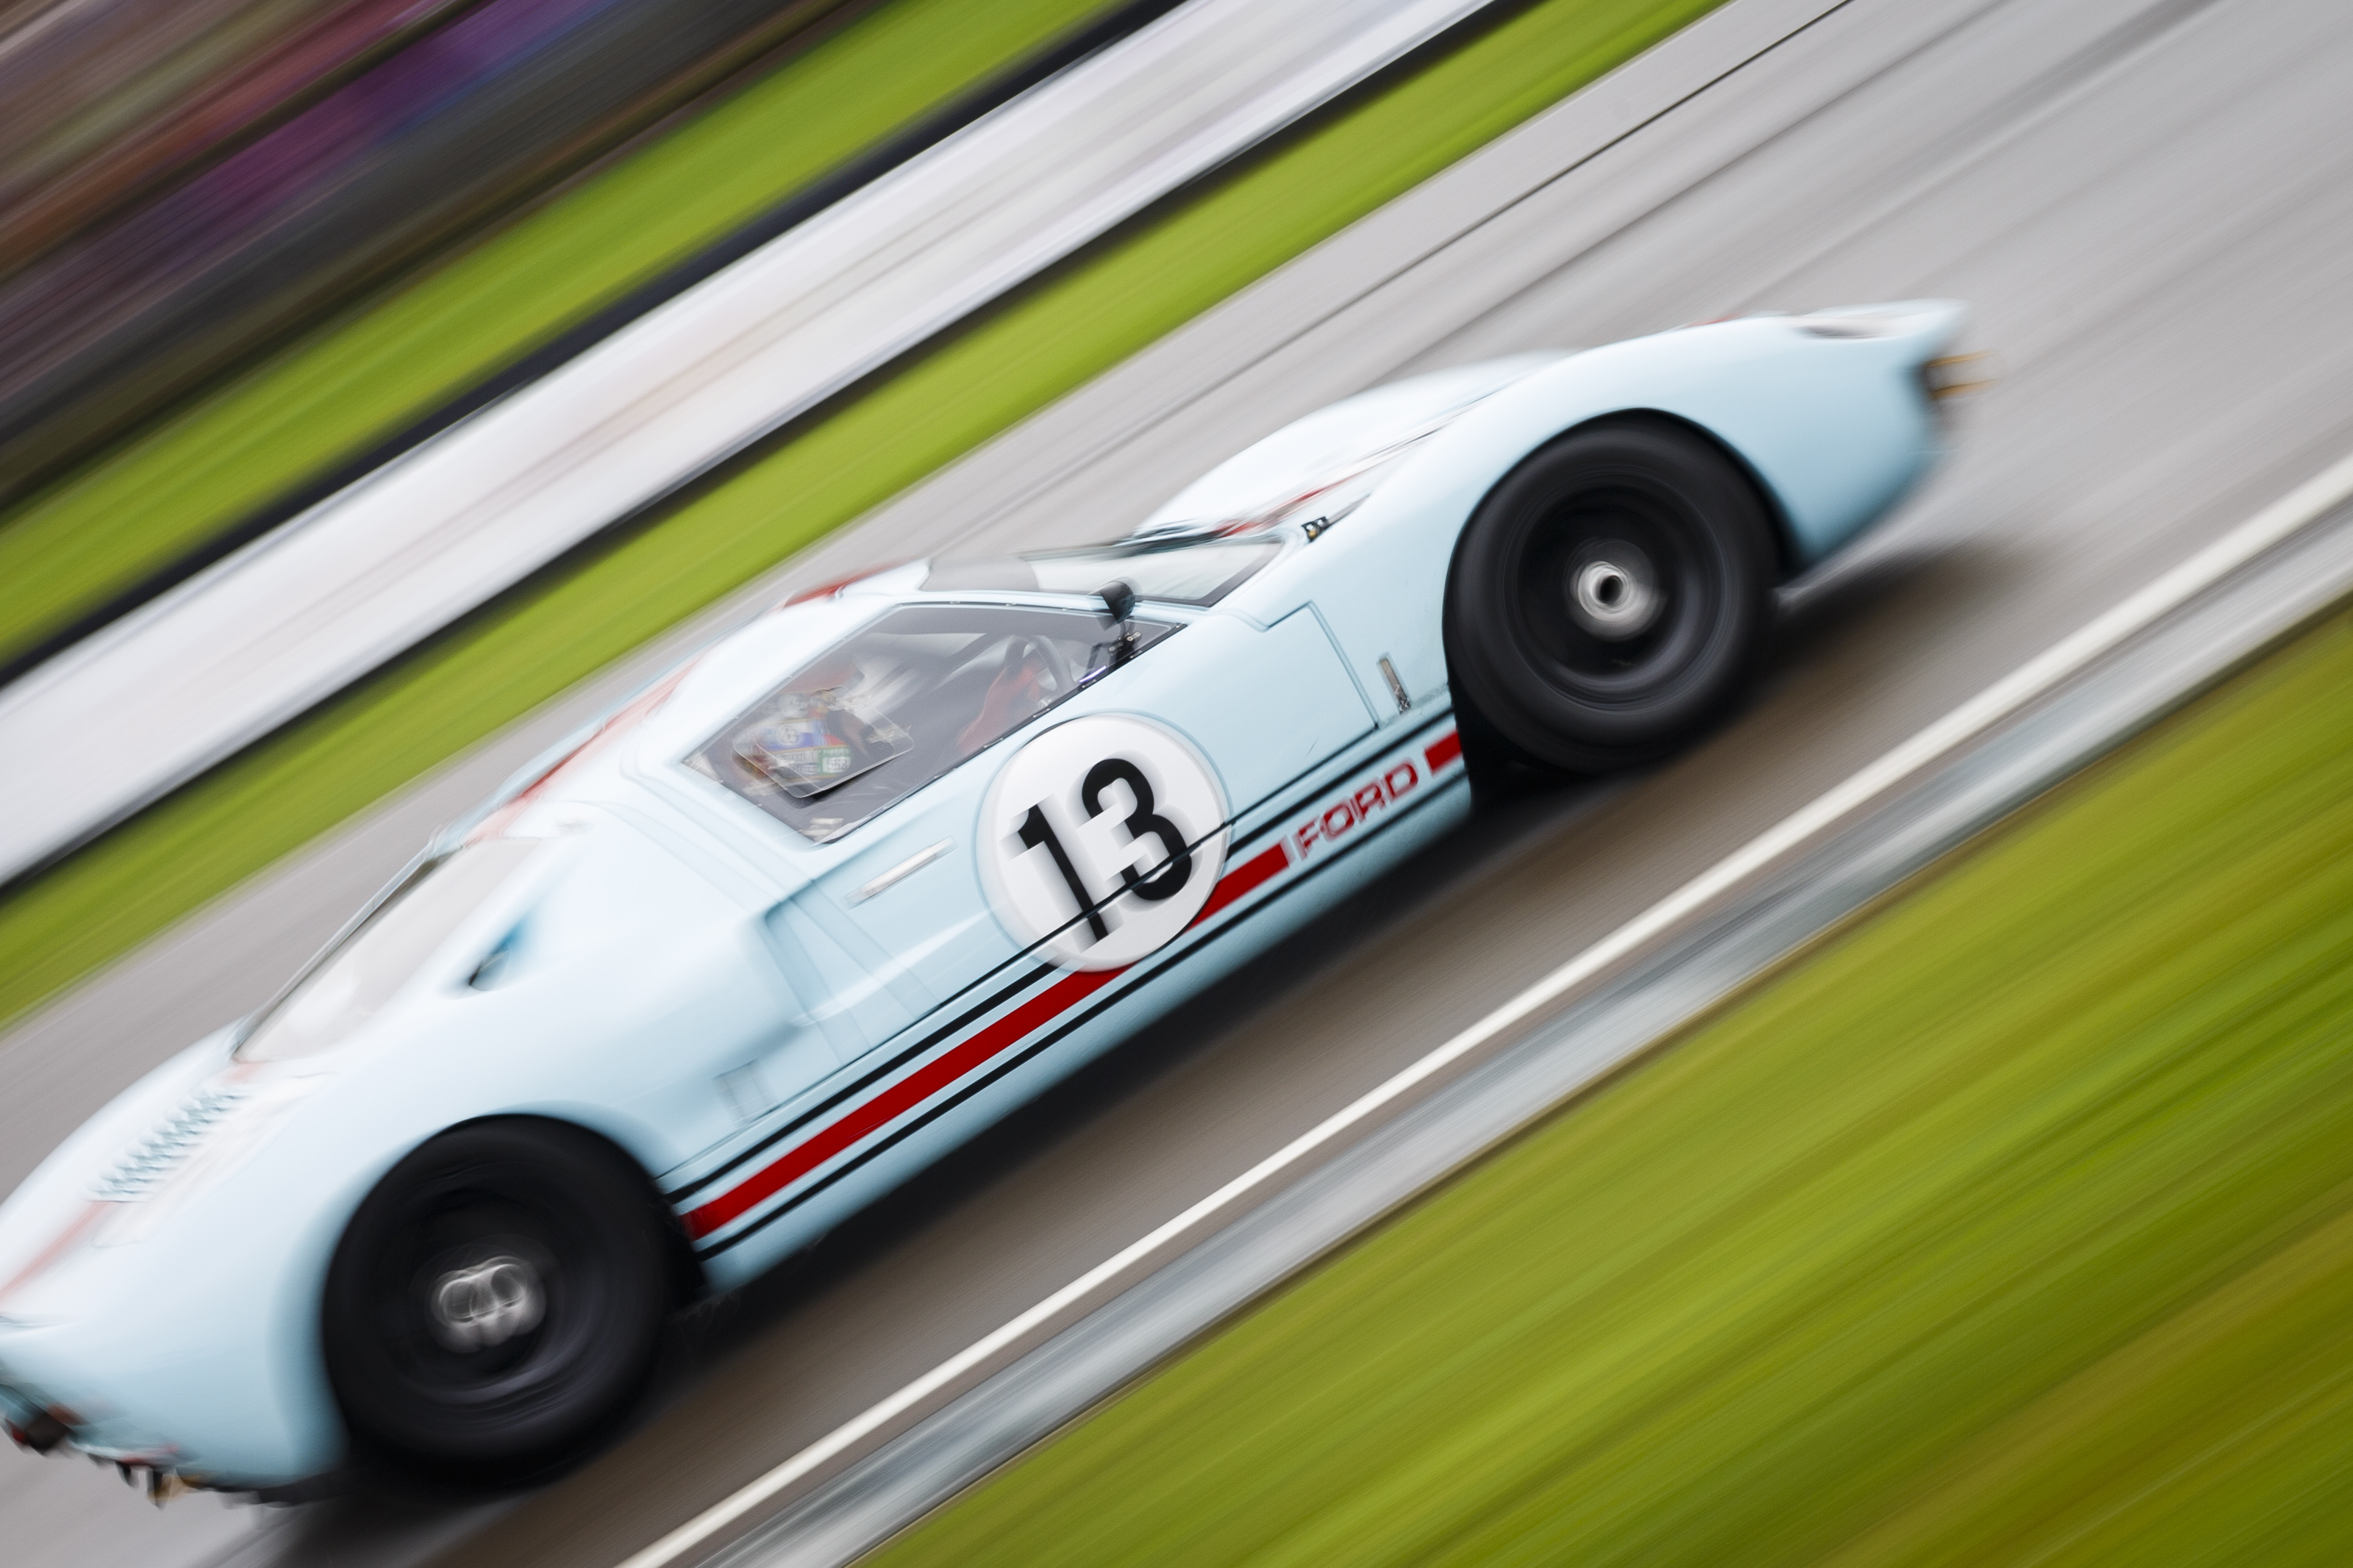 Bored Try The Goodwood Revival Livestream Ars Technica - Goodwood hardware car show